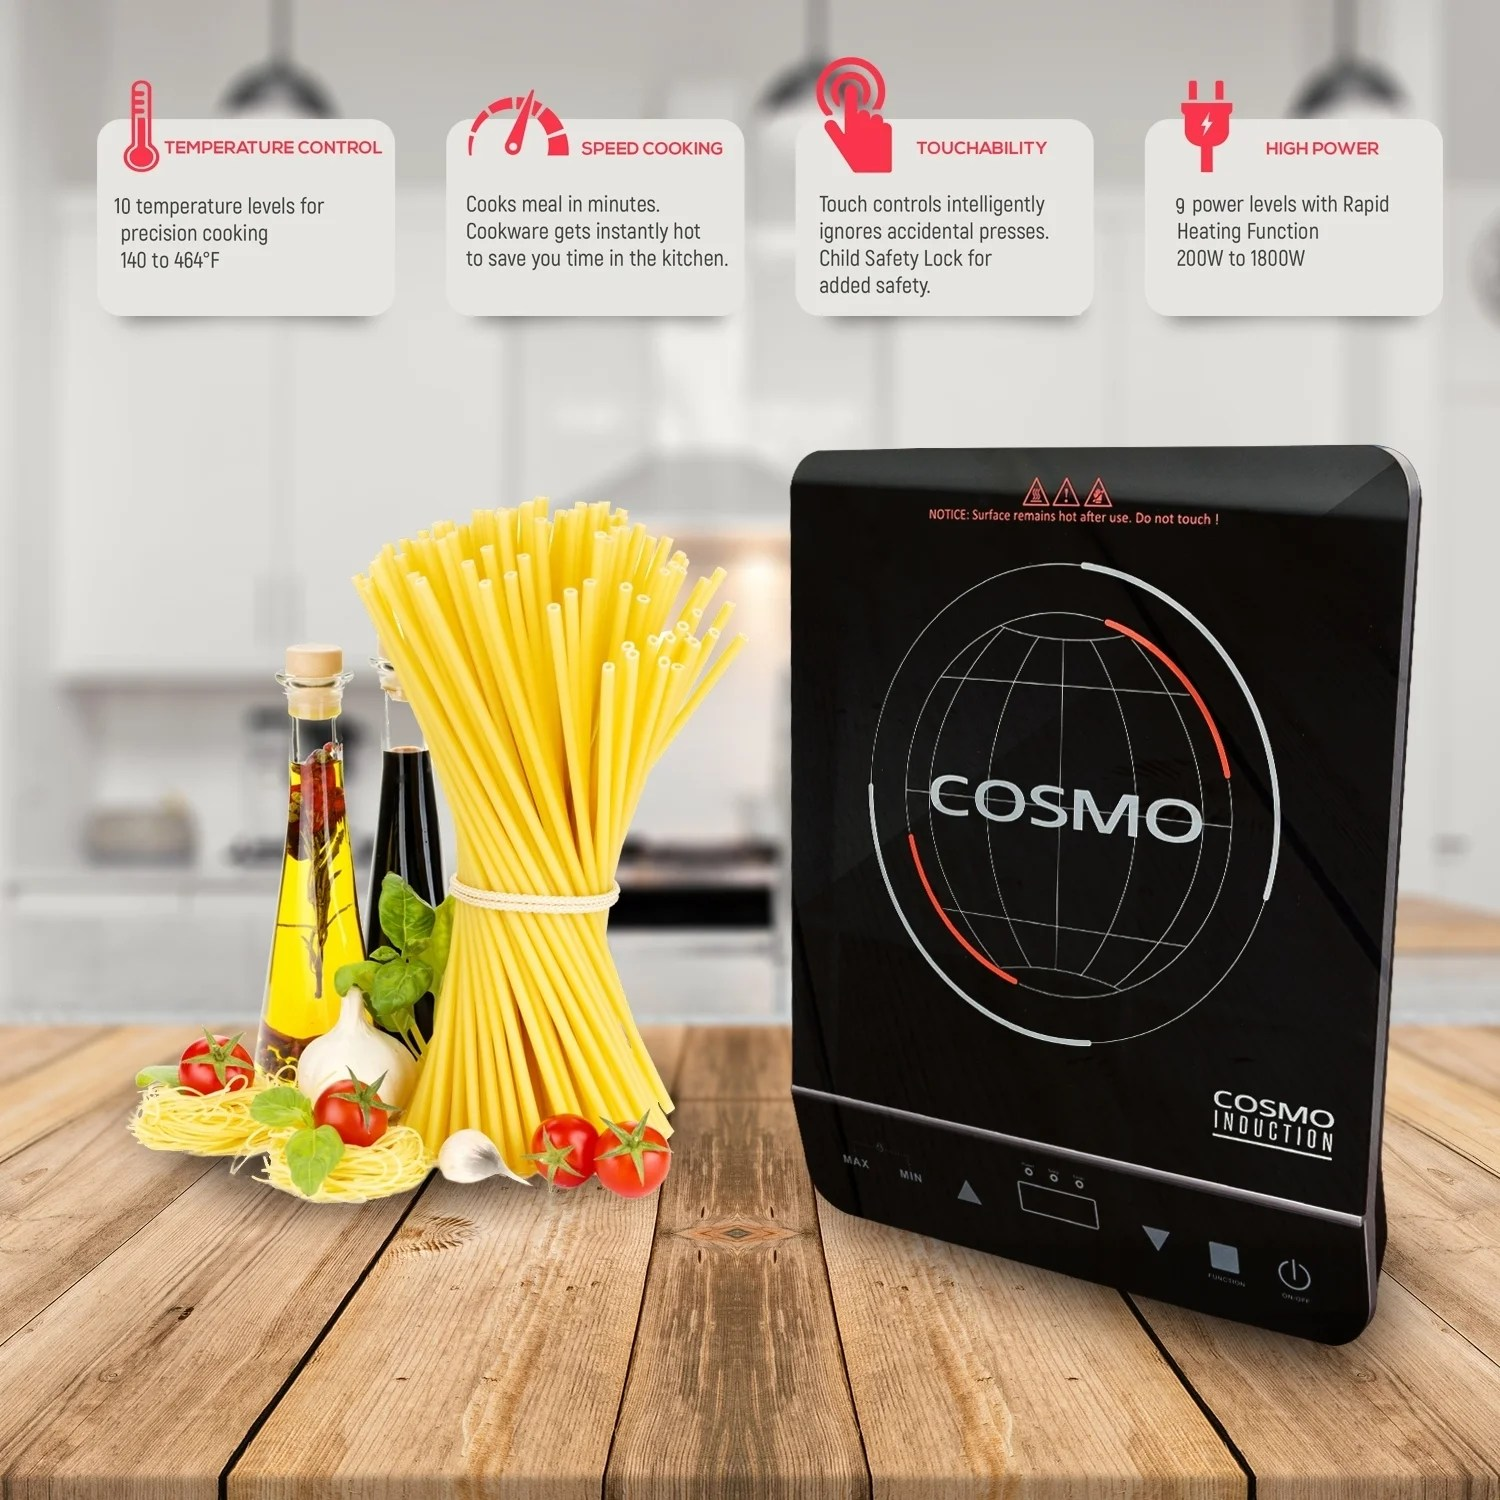 Cuisine Induction Cosmo 1800 Watt Induction Cooktop With Rapid Heating And Safety Lock